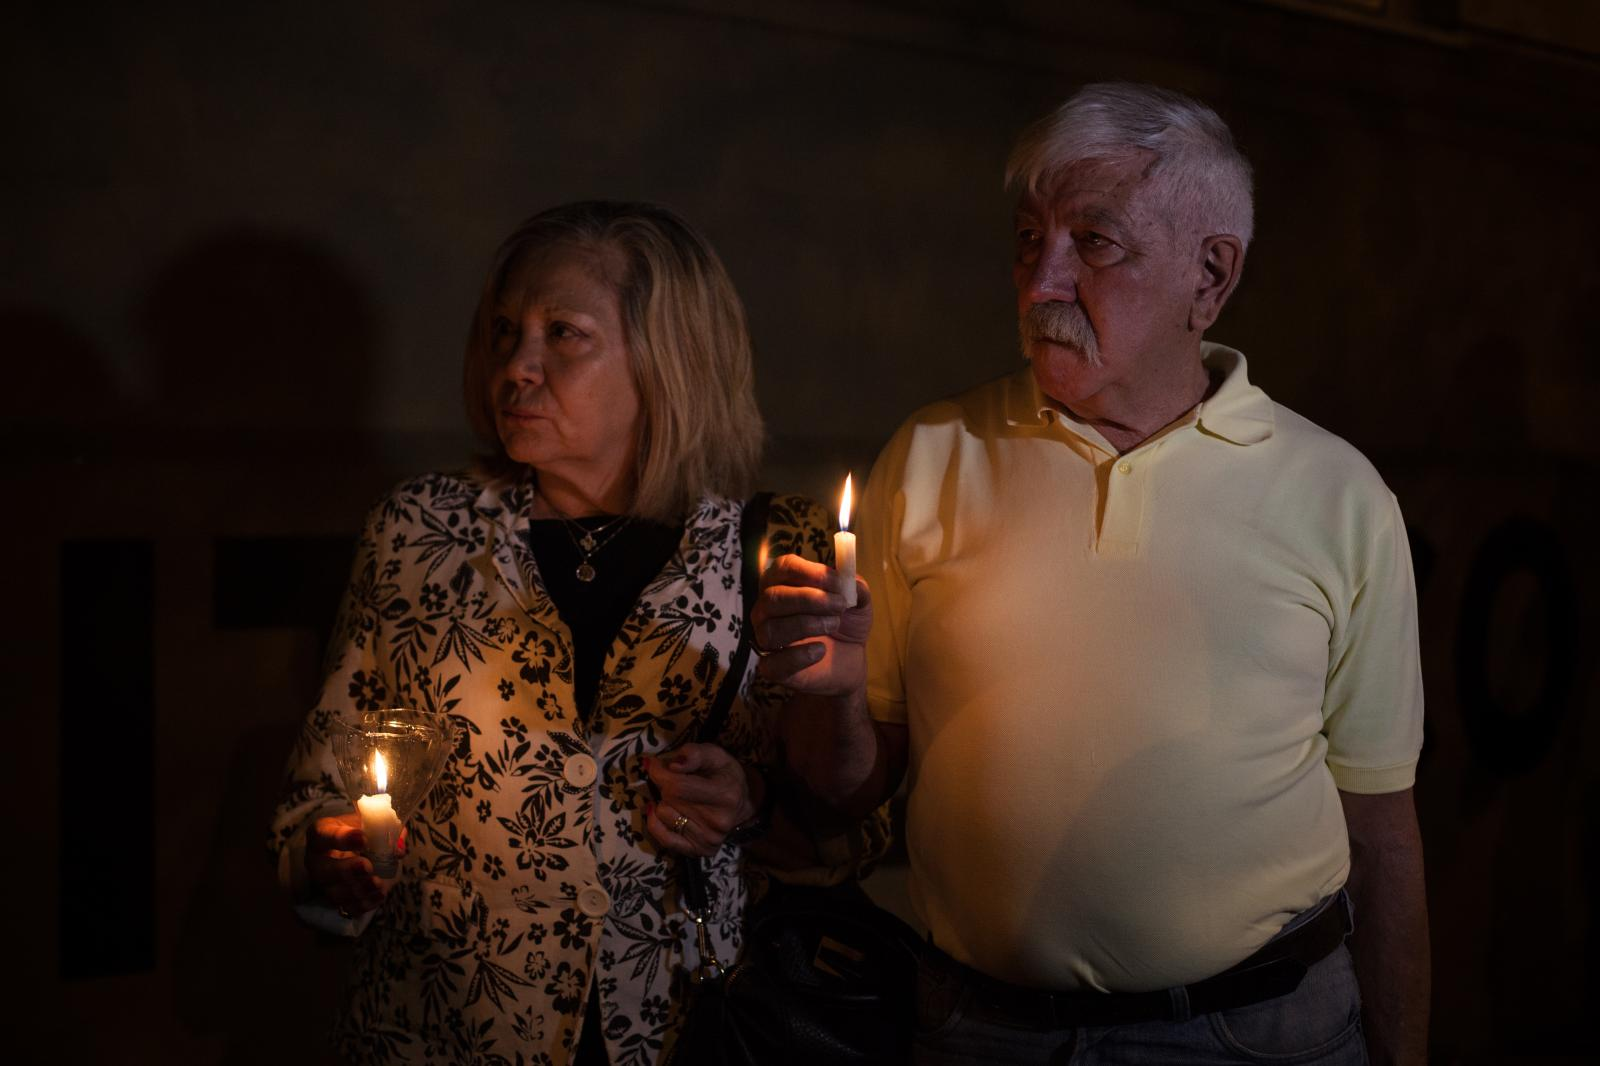 A couple holds a candle at the vigil for the victims of Manhattan terrorist attack. Rosario, Argentina, November 1st 2017, Erica Canepa for The Wall Street Journal